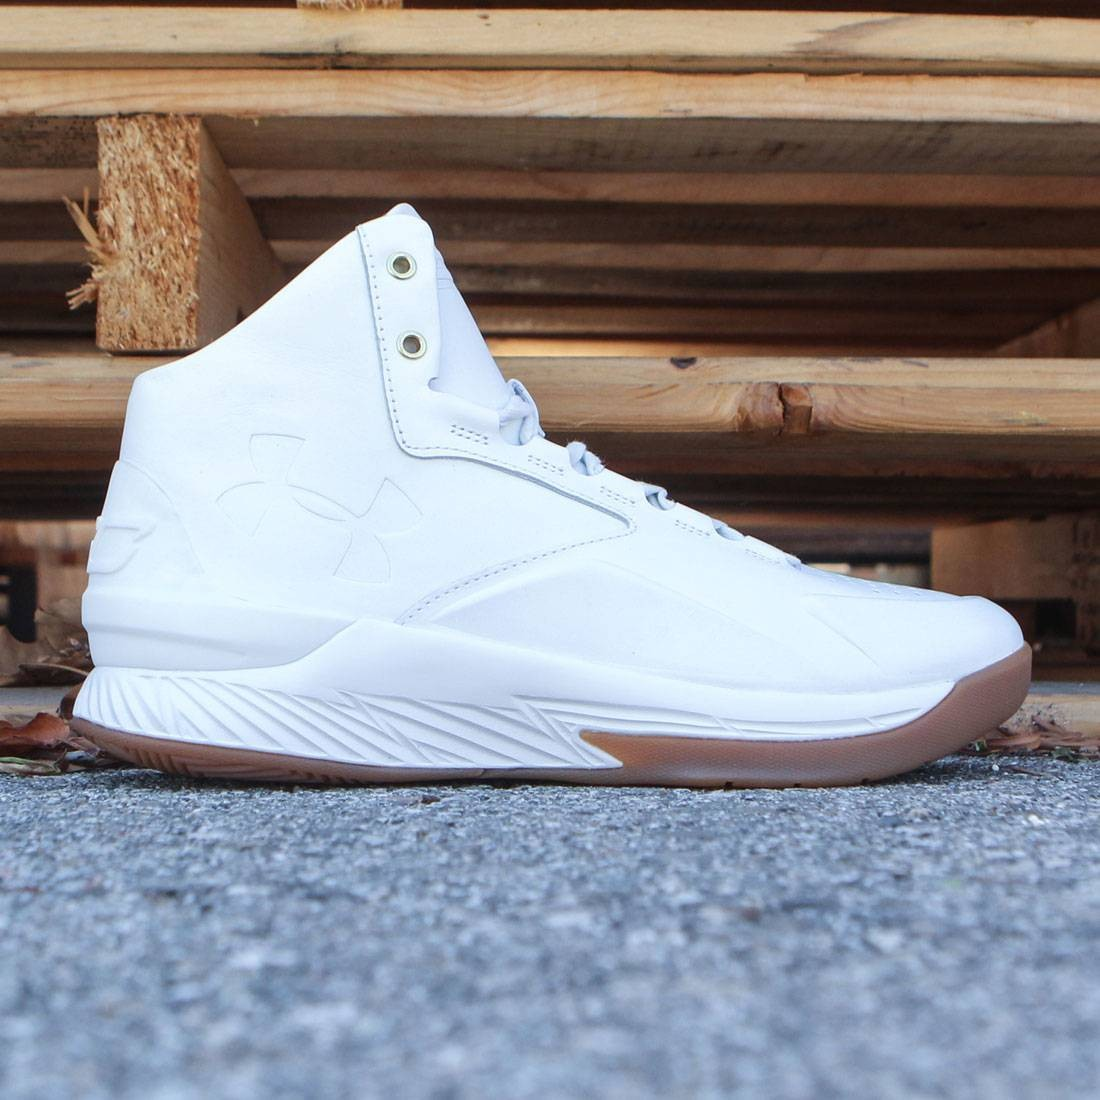 new style f65a1 1cb7b Under Armour x Steph Curry Men Curry 1 Mid Alpha Leather - Curry Lux Pack  (white / stone)